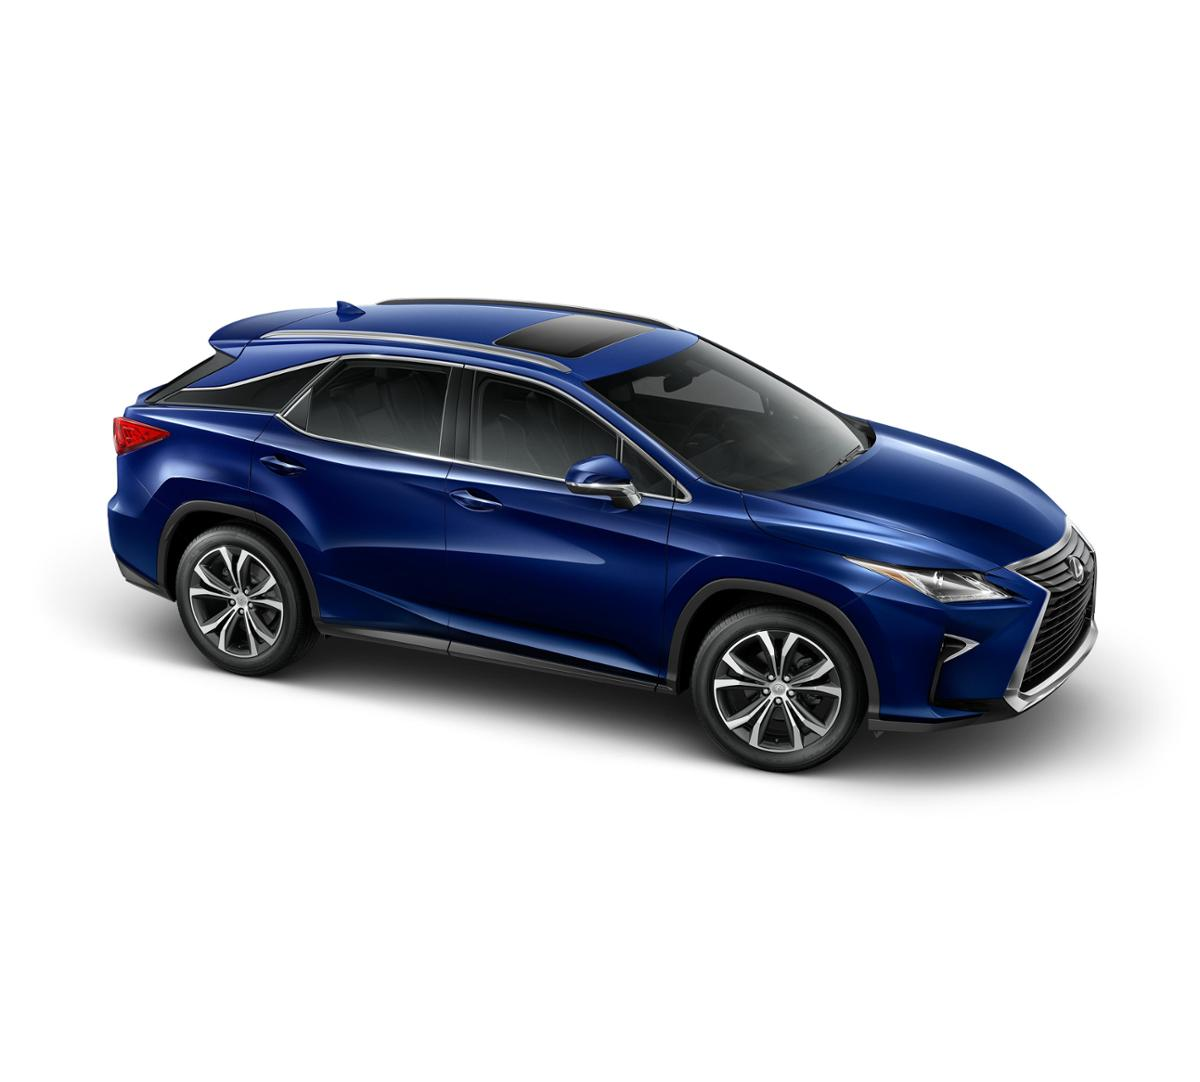 Lexus Rx 350 Lease: 2018 Nightfall Mica Lexus RX 350 For Sale In San Rafael